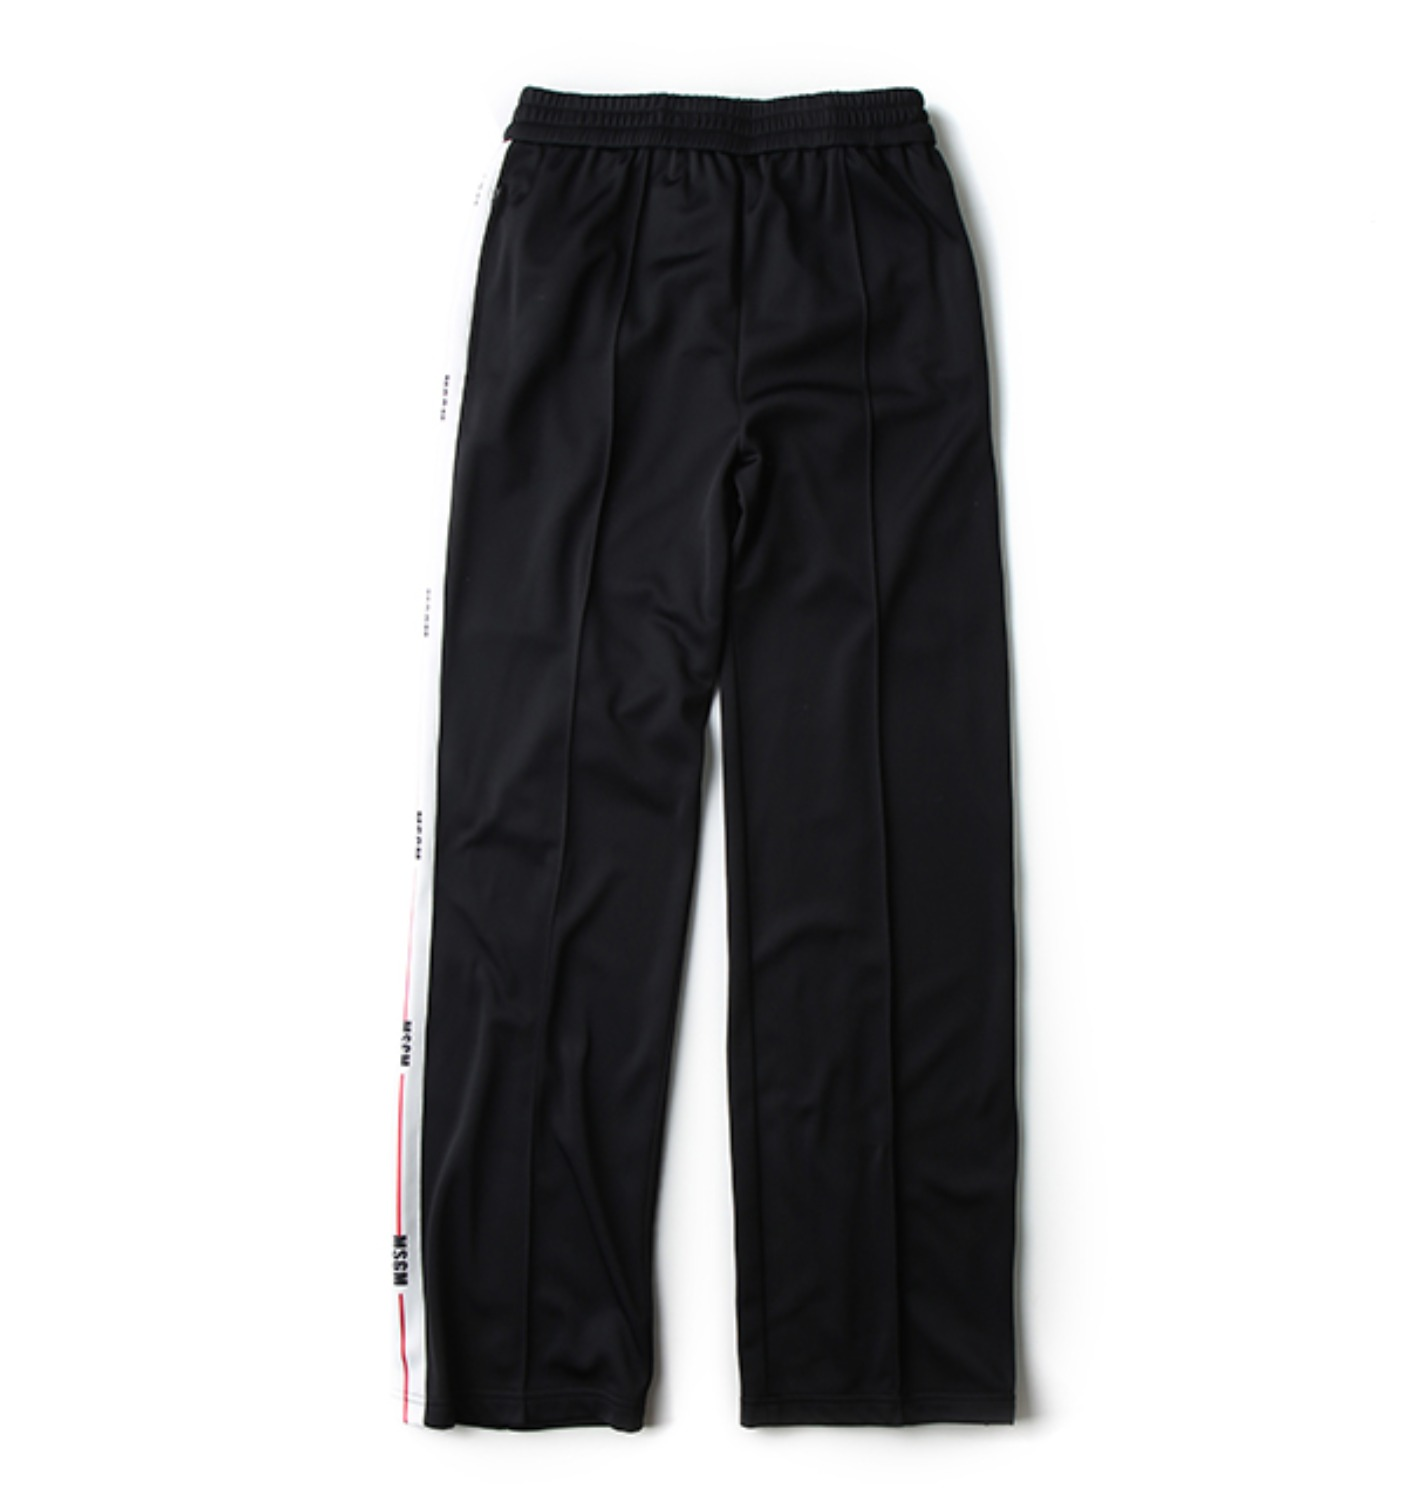 PANTALONE PANTS BLACK(2341MDP07-174624)